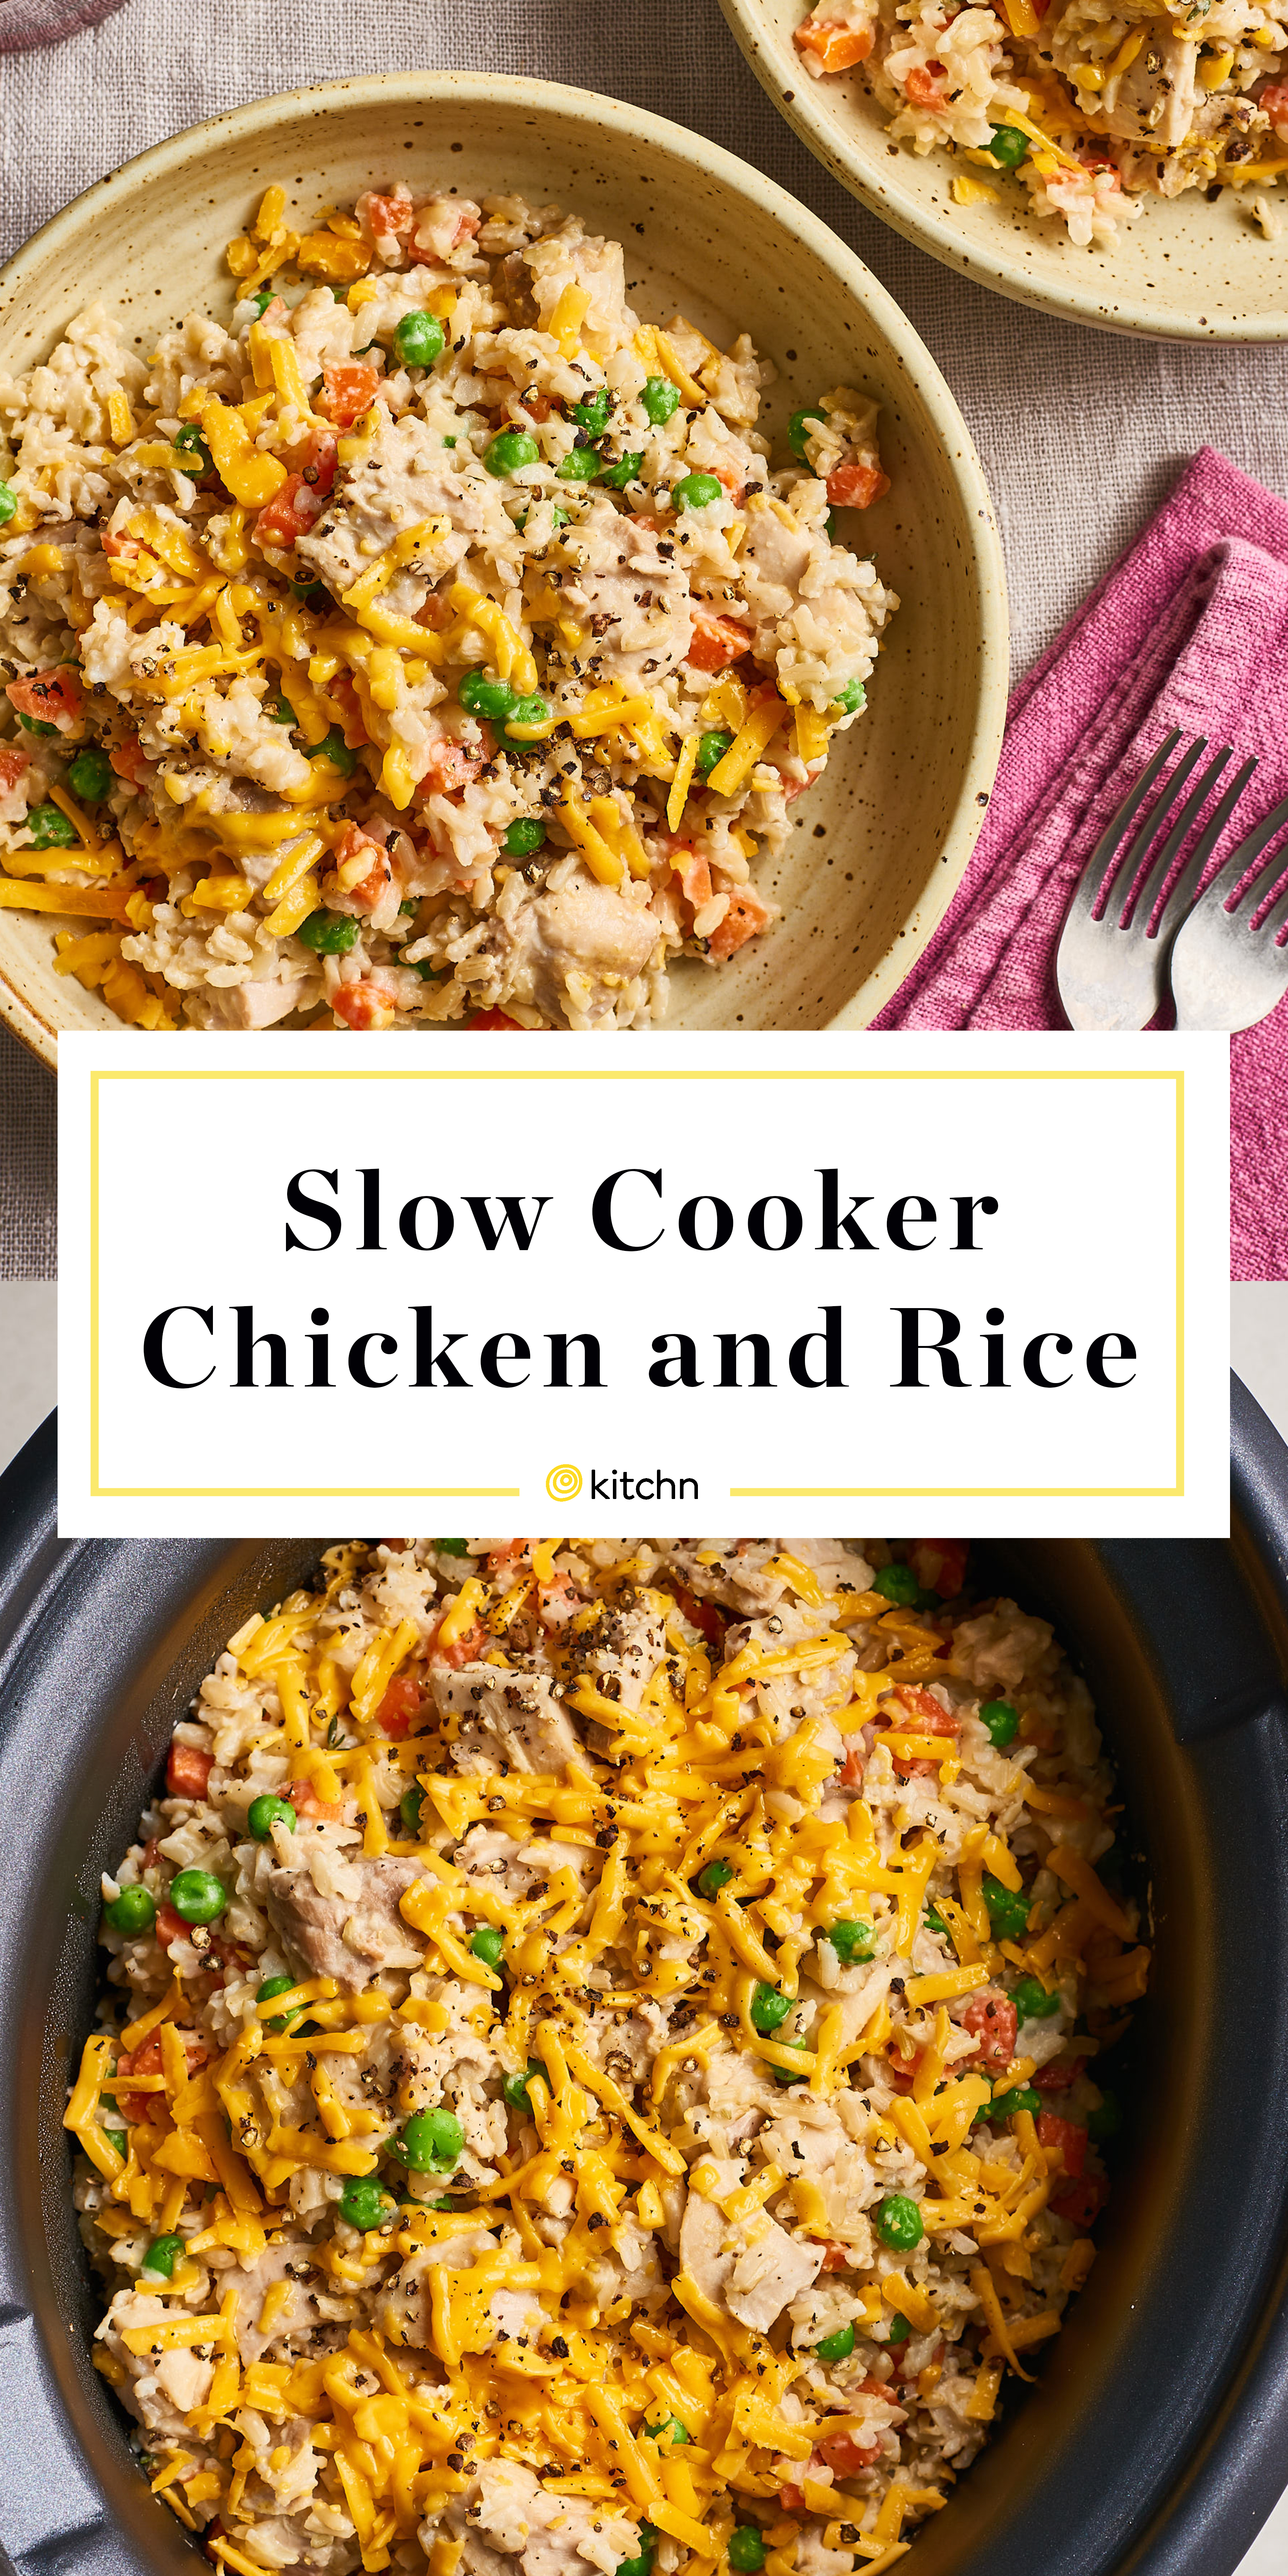 Slow Cooker Recipes With Rice